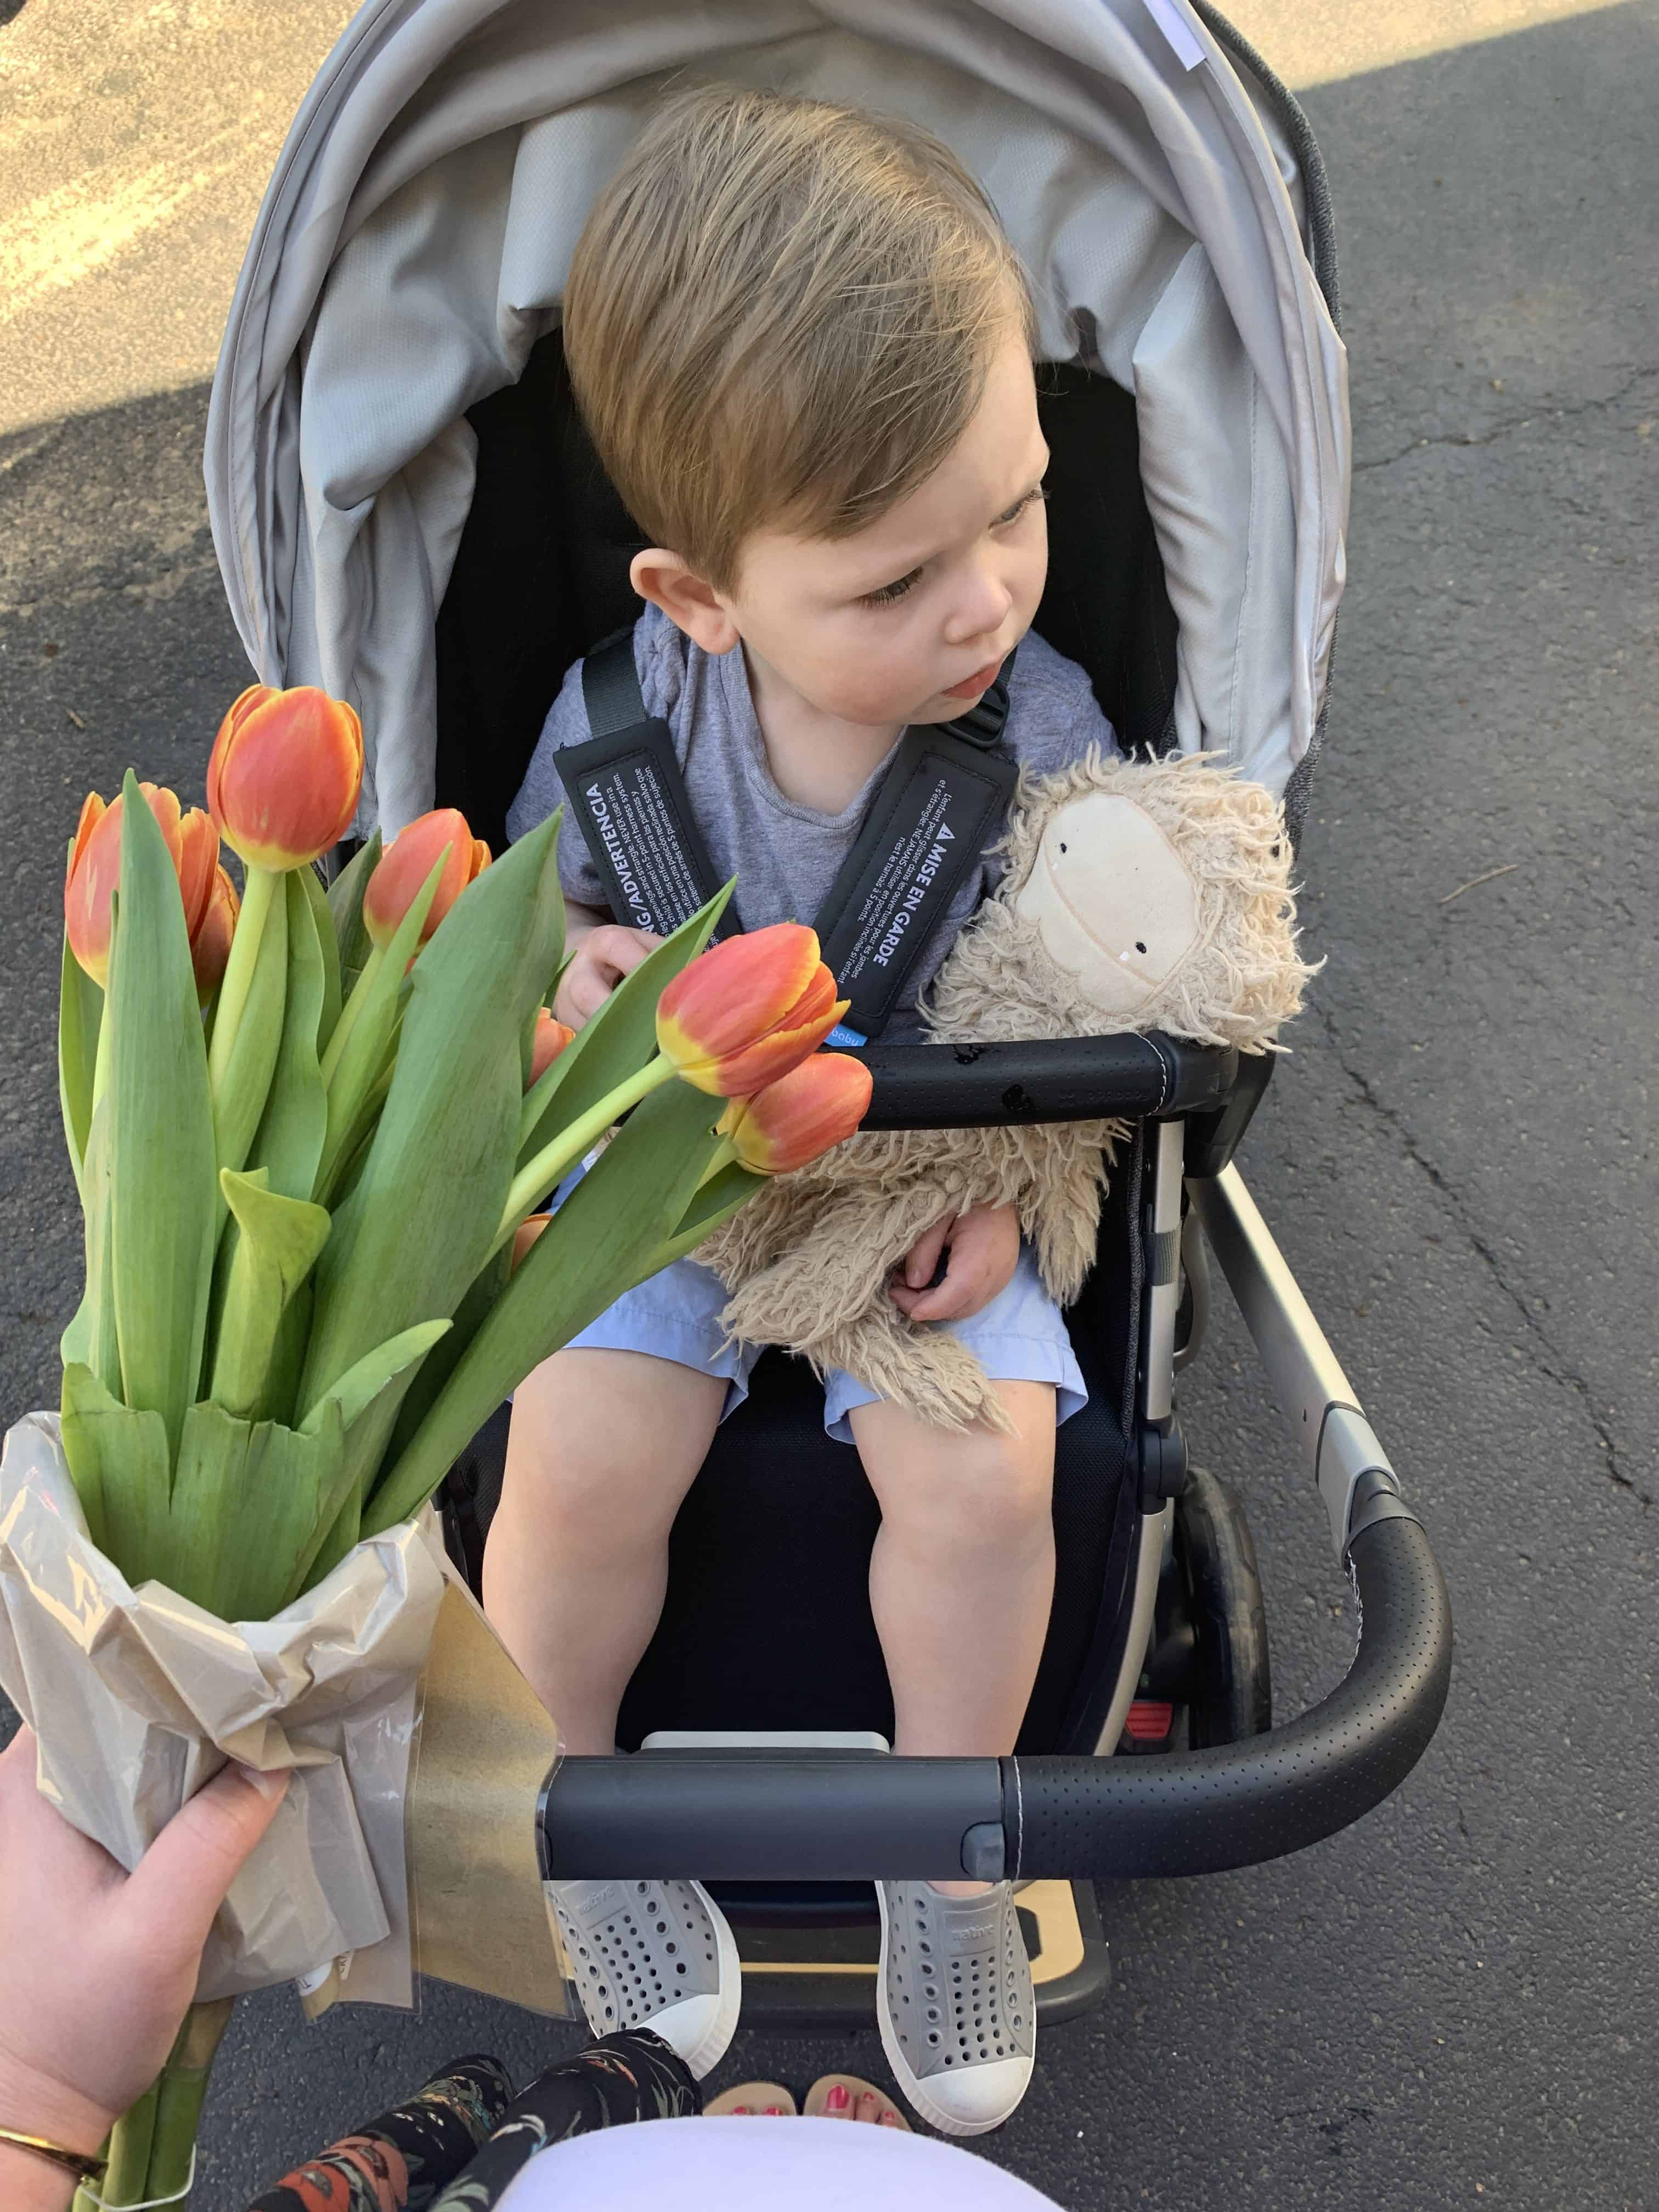 Little boy in uppa baby stroller with flowers